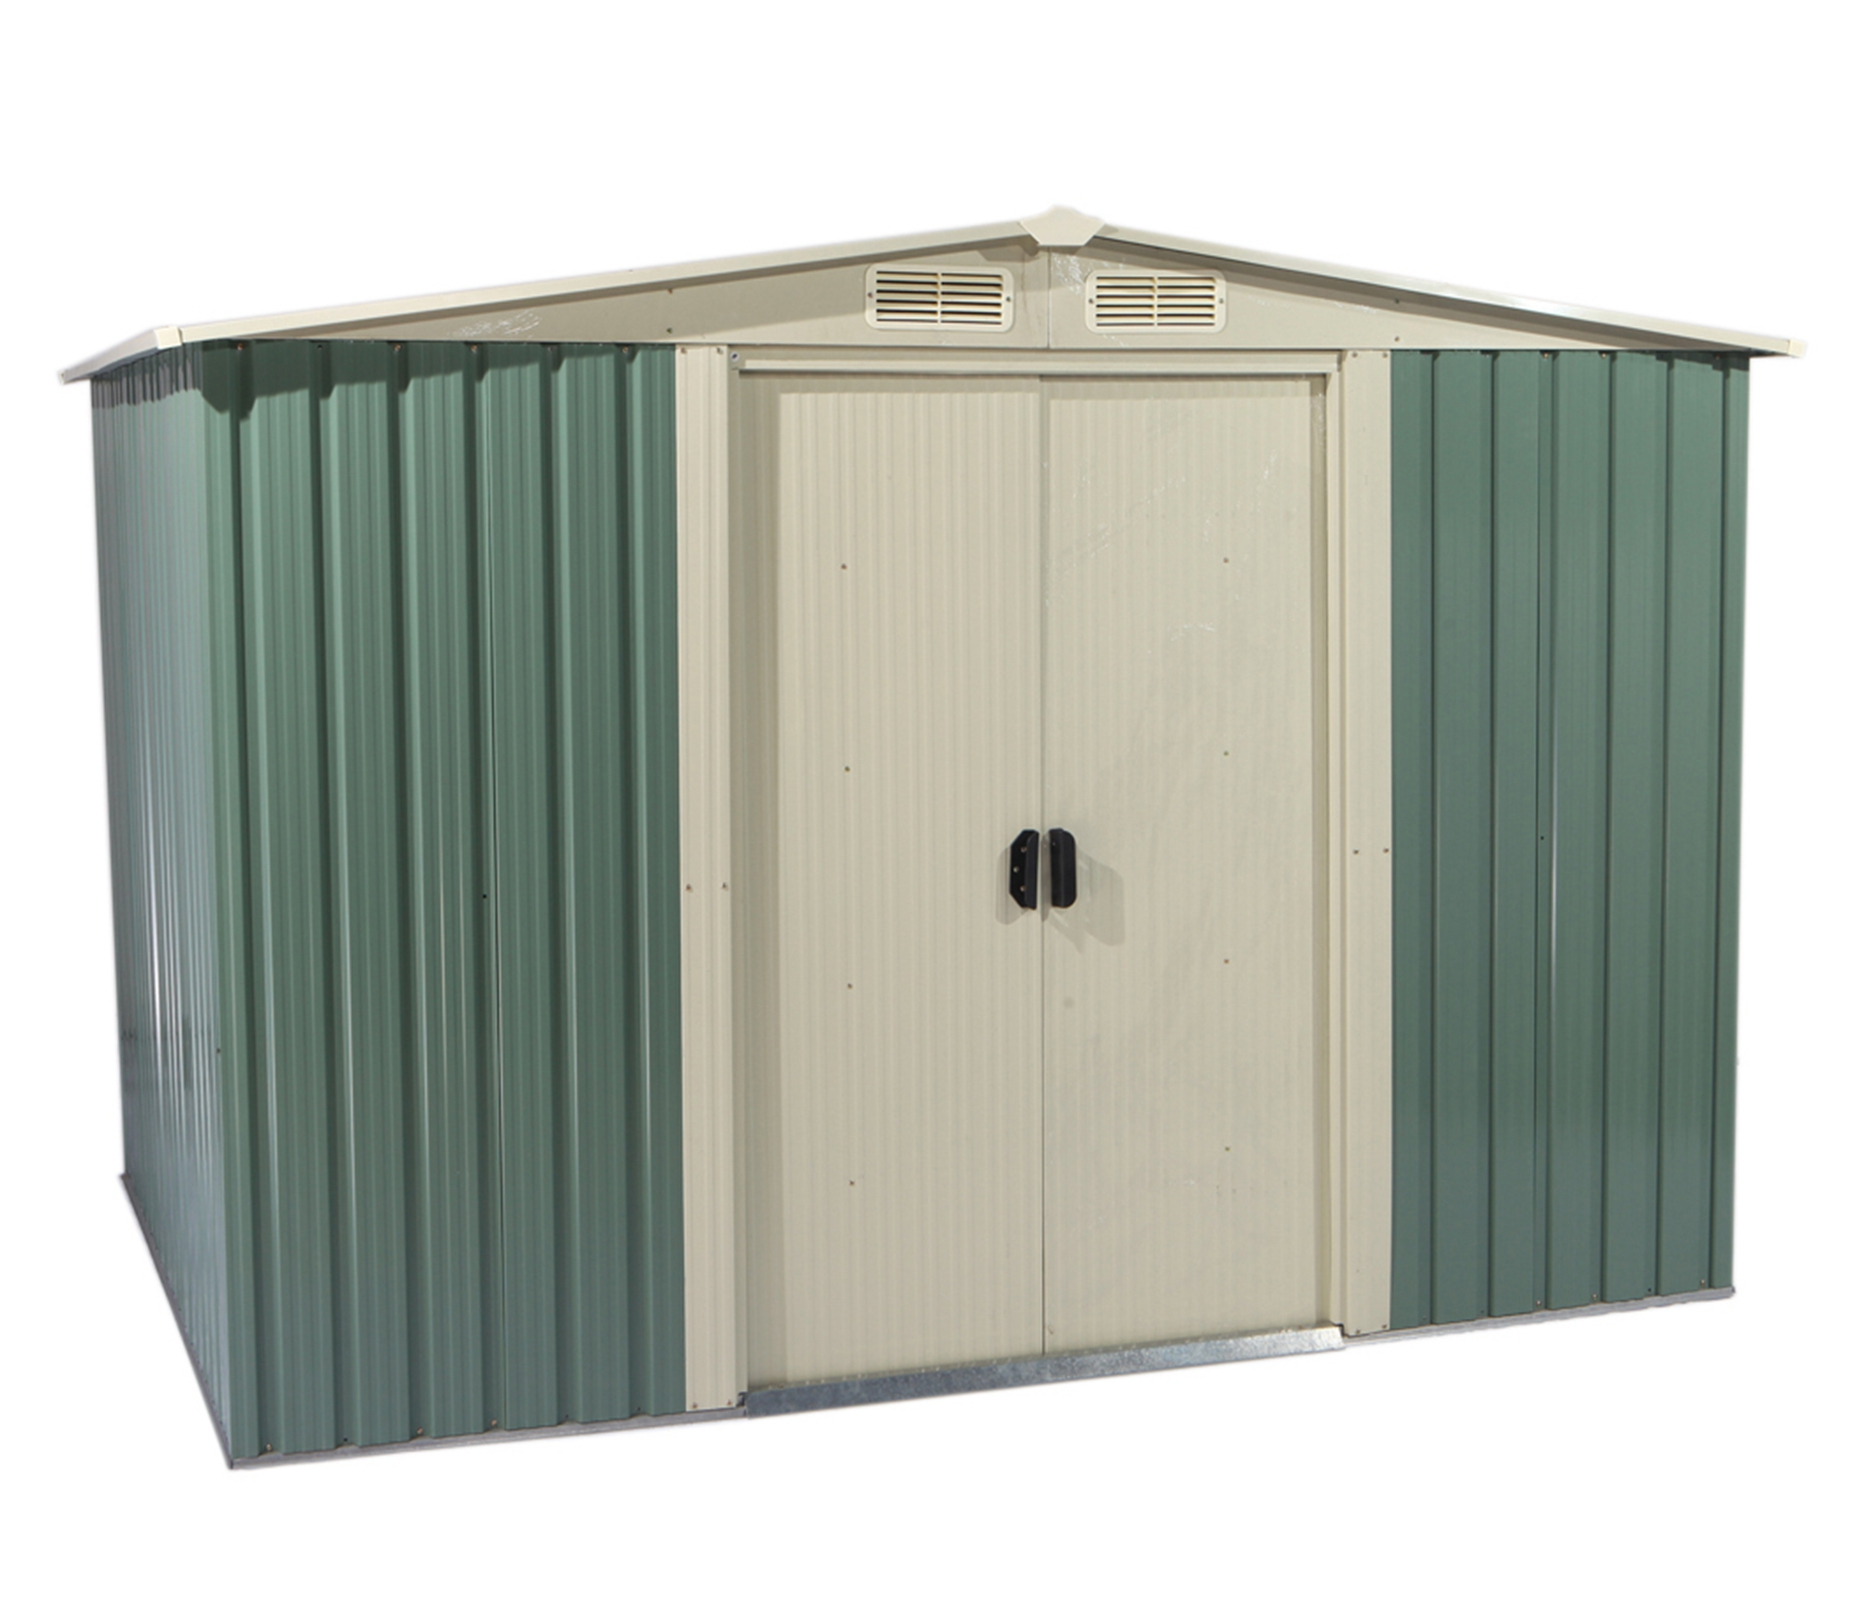 Attrayant Foxhunter Garden Shed Metal Apex 10 X 8ft Outdoor Storage